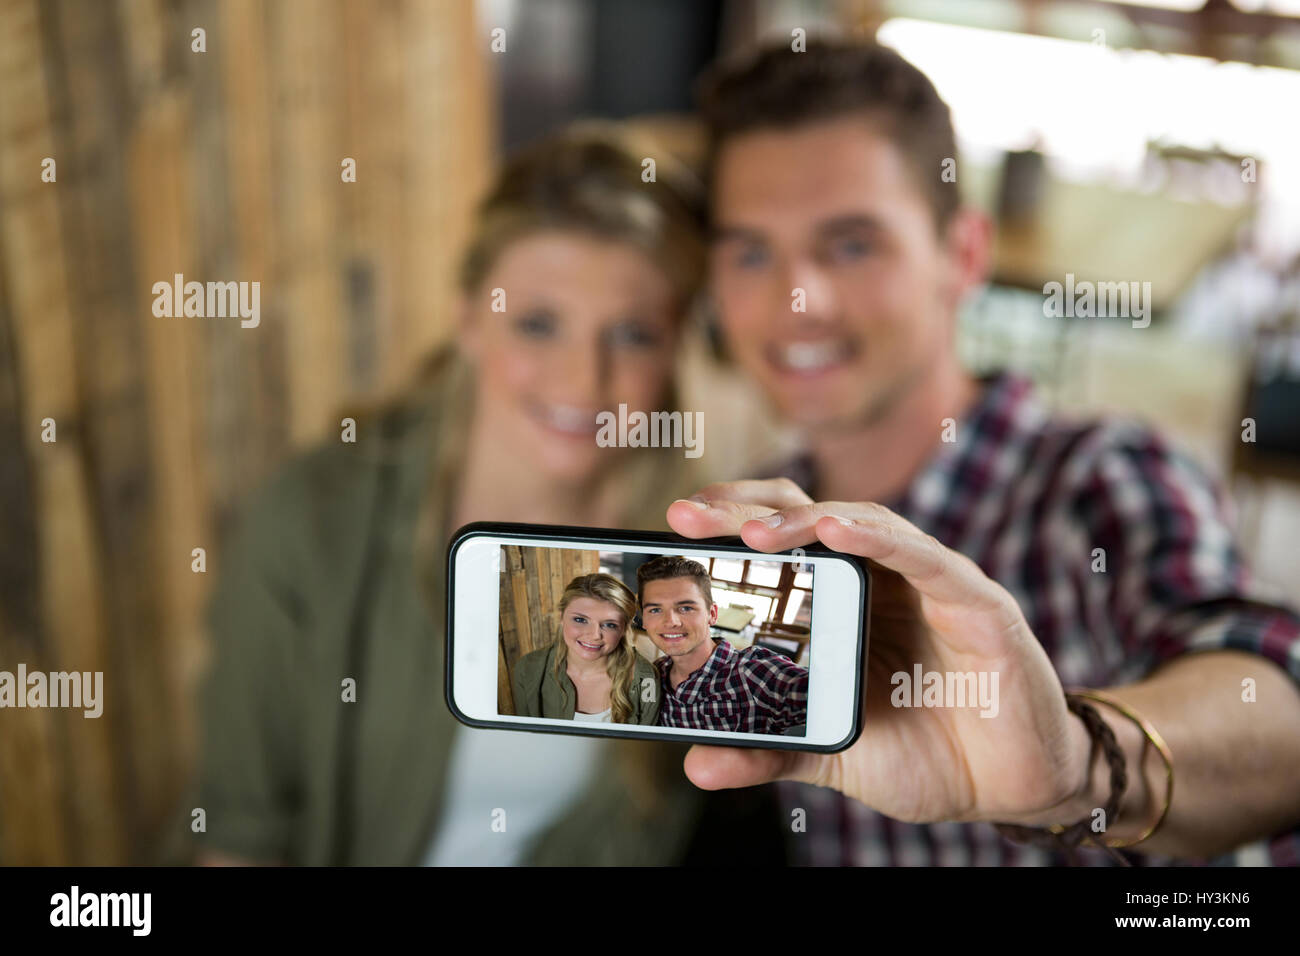 Smiling young couple taking selfie with cellphone in cafeteria Stock Photo